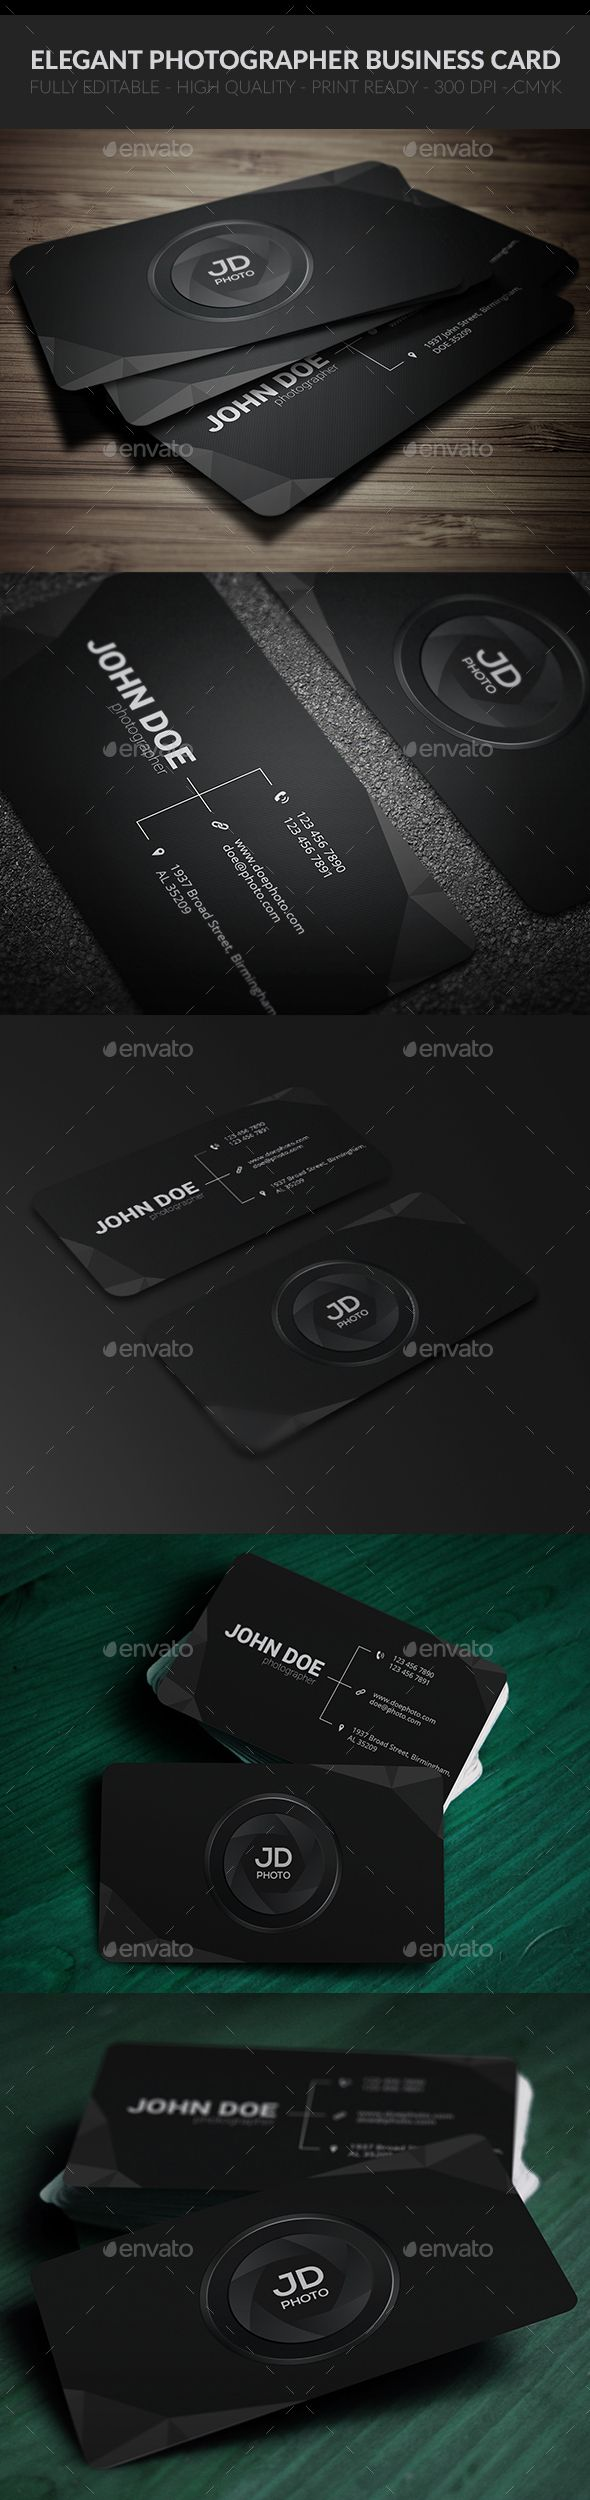 The 250 best photography business card design images on pinterest elegant photographer business card accmission